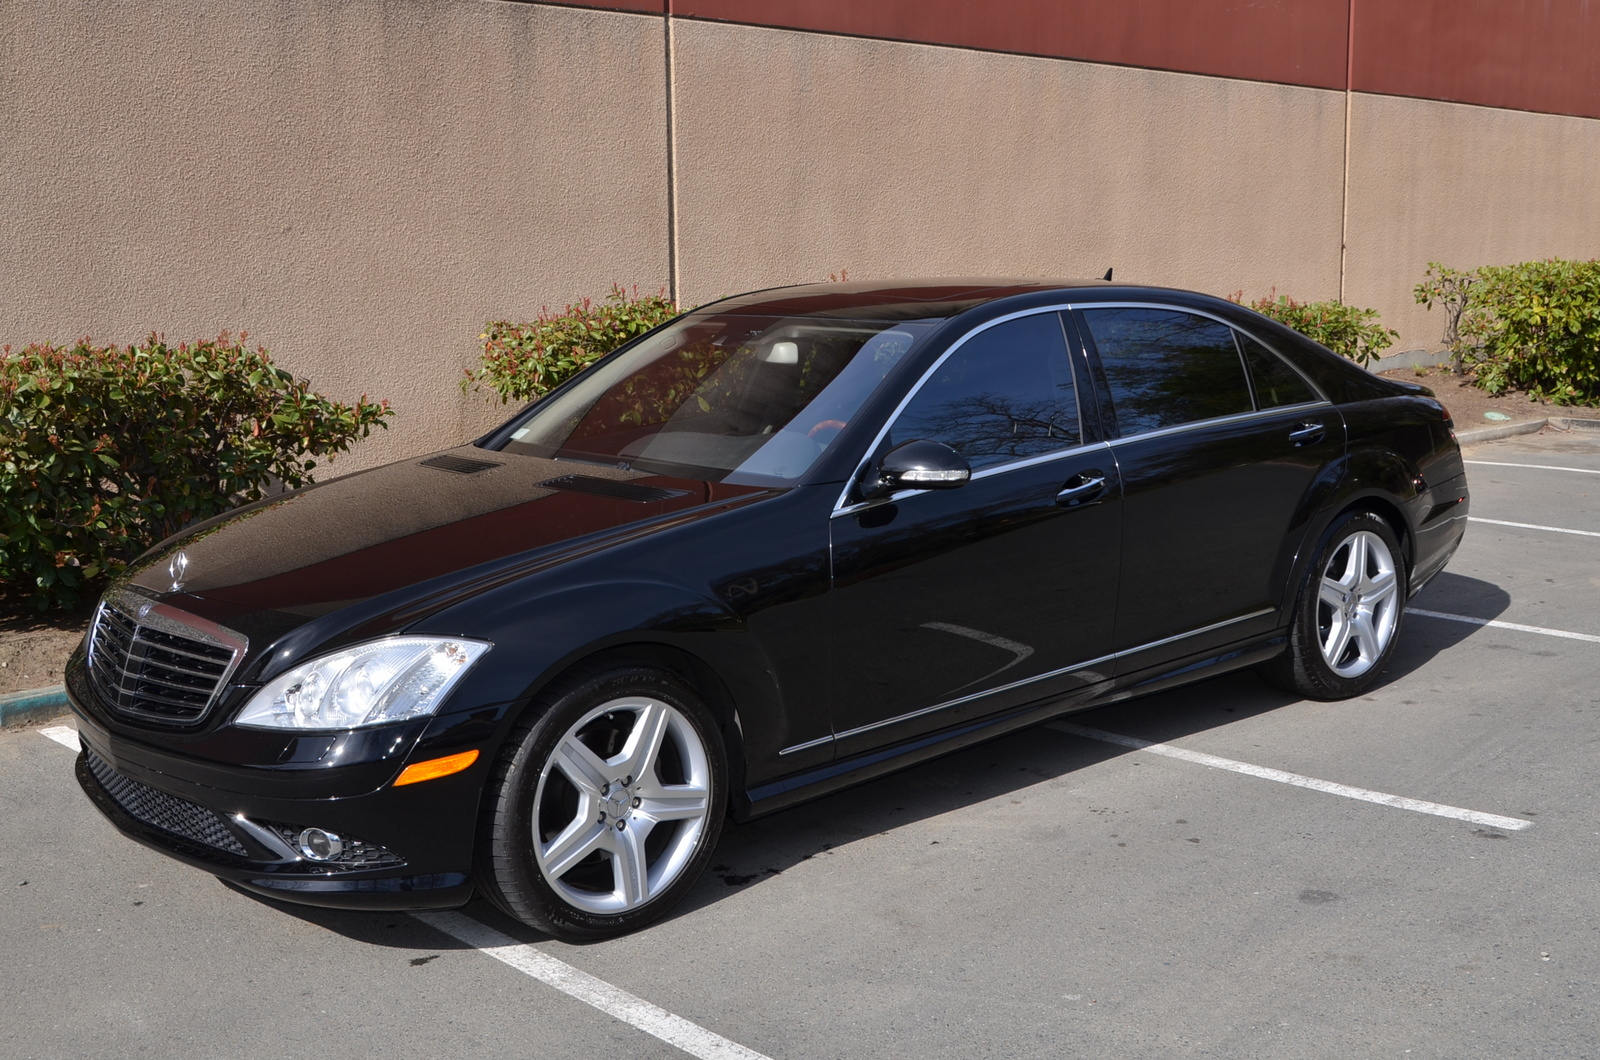 2007 mercedes benz s class pictures cargurus for Mercedes benz extended warranty price